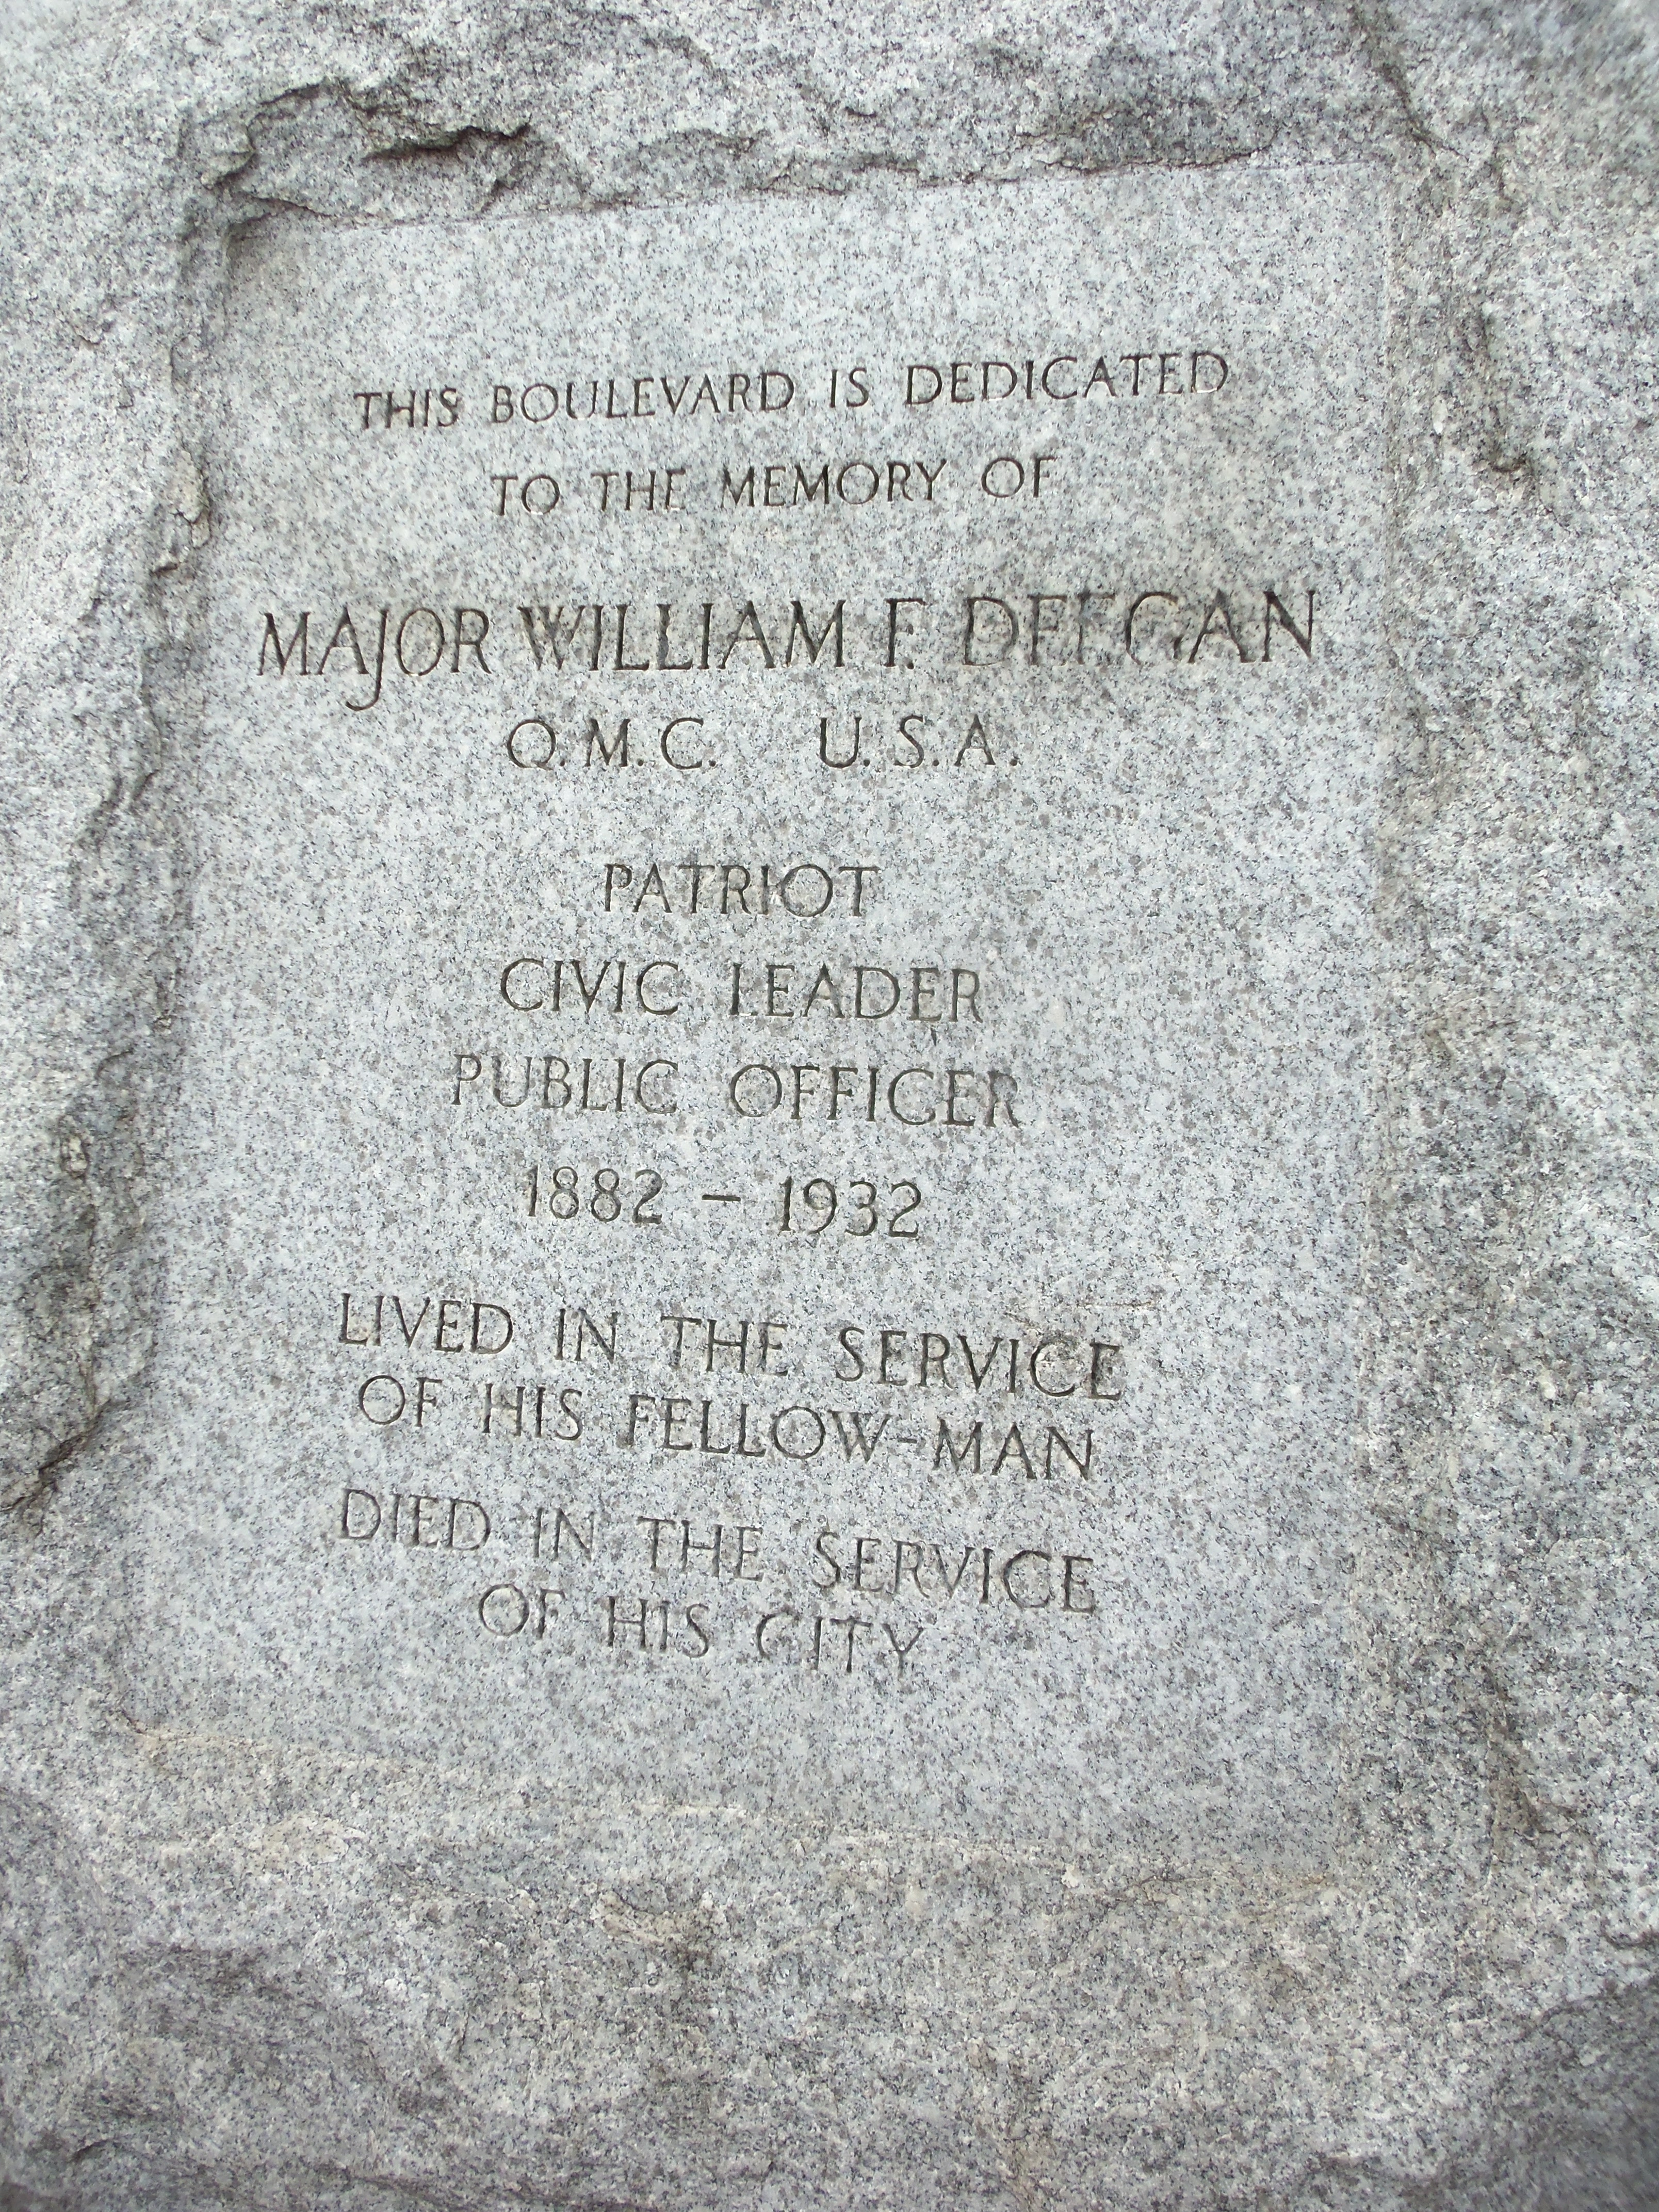 Monument to Major Deegan, who died in service to his city